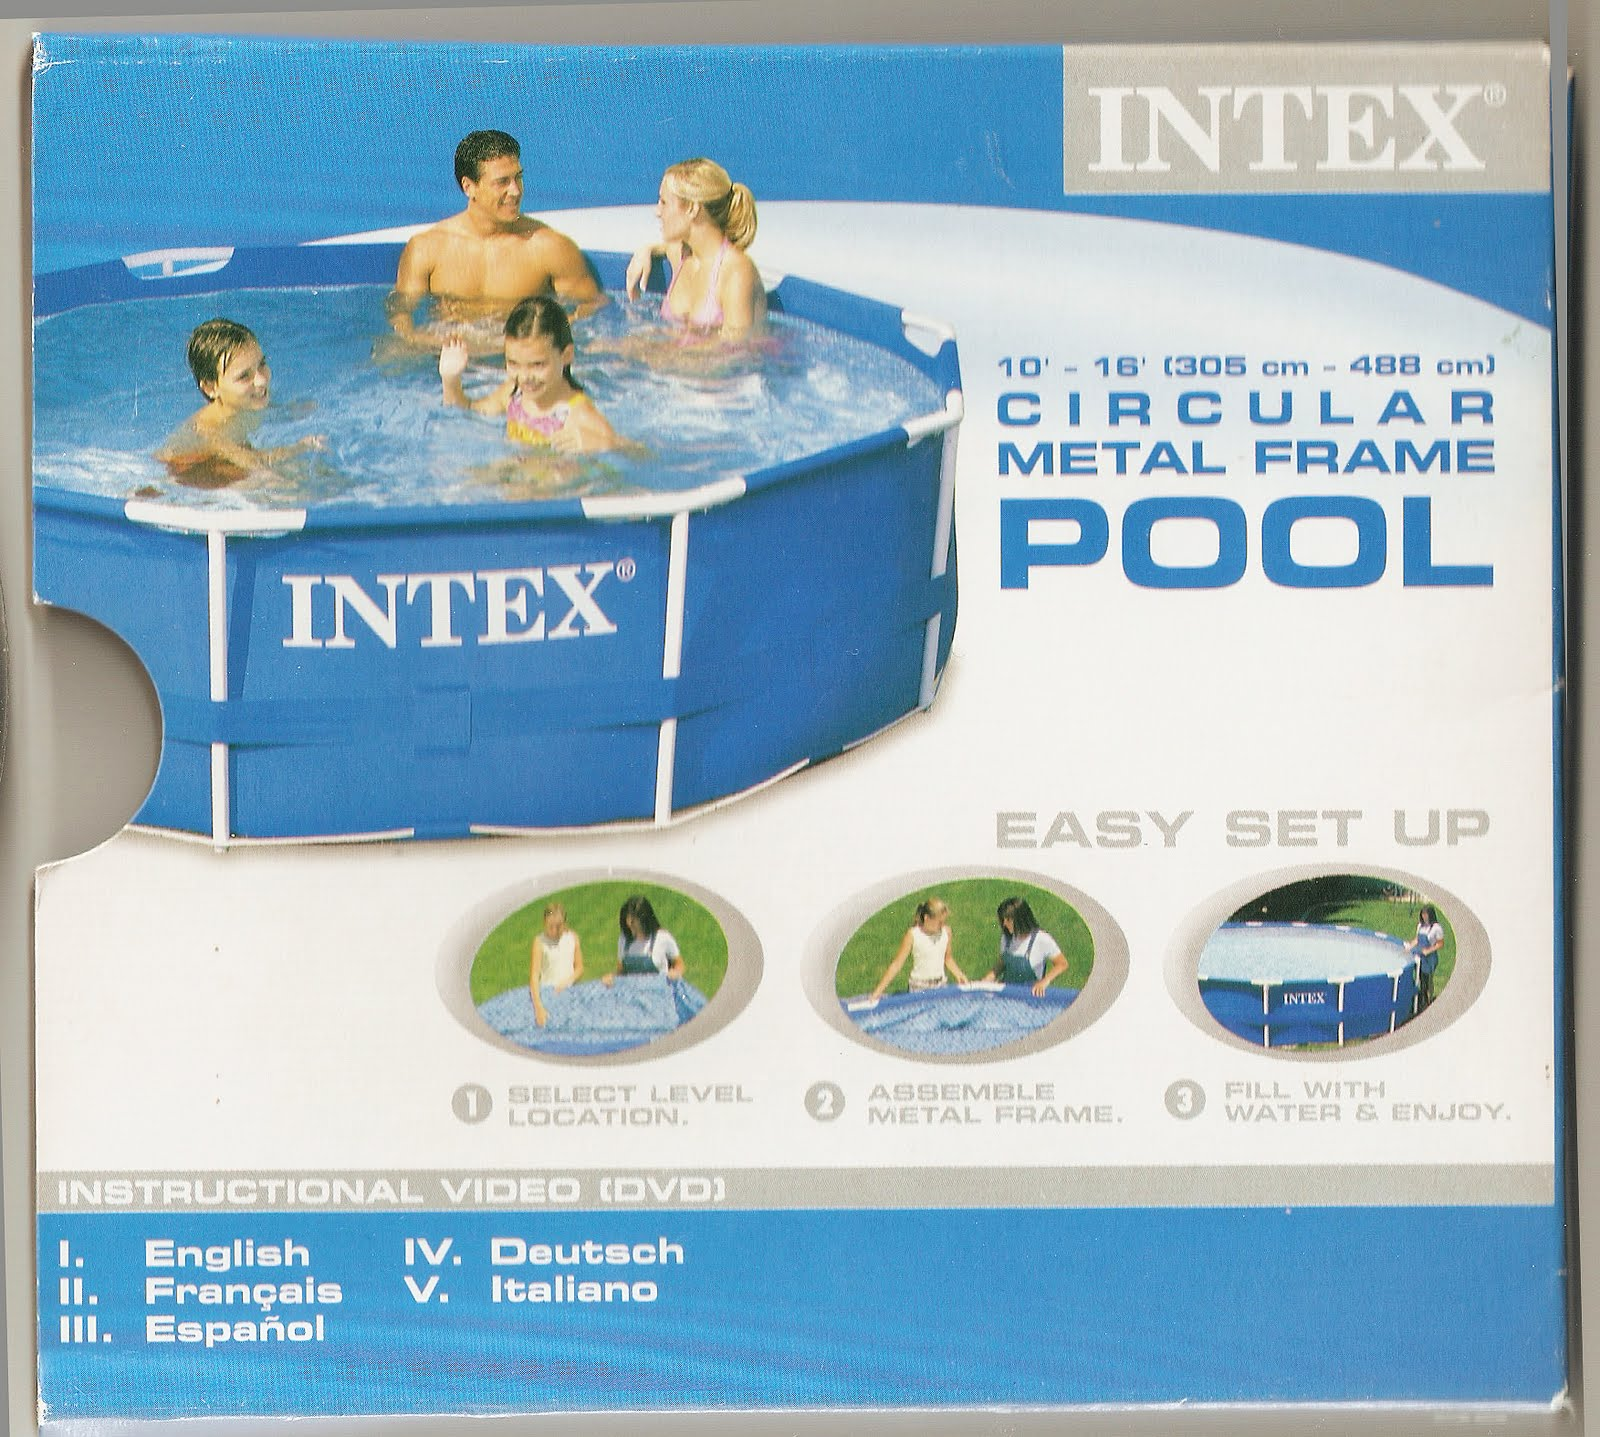 Vendocosasxviaje piscina desmontable intex con bomba for Piscina pequena desmontable con depuradora